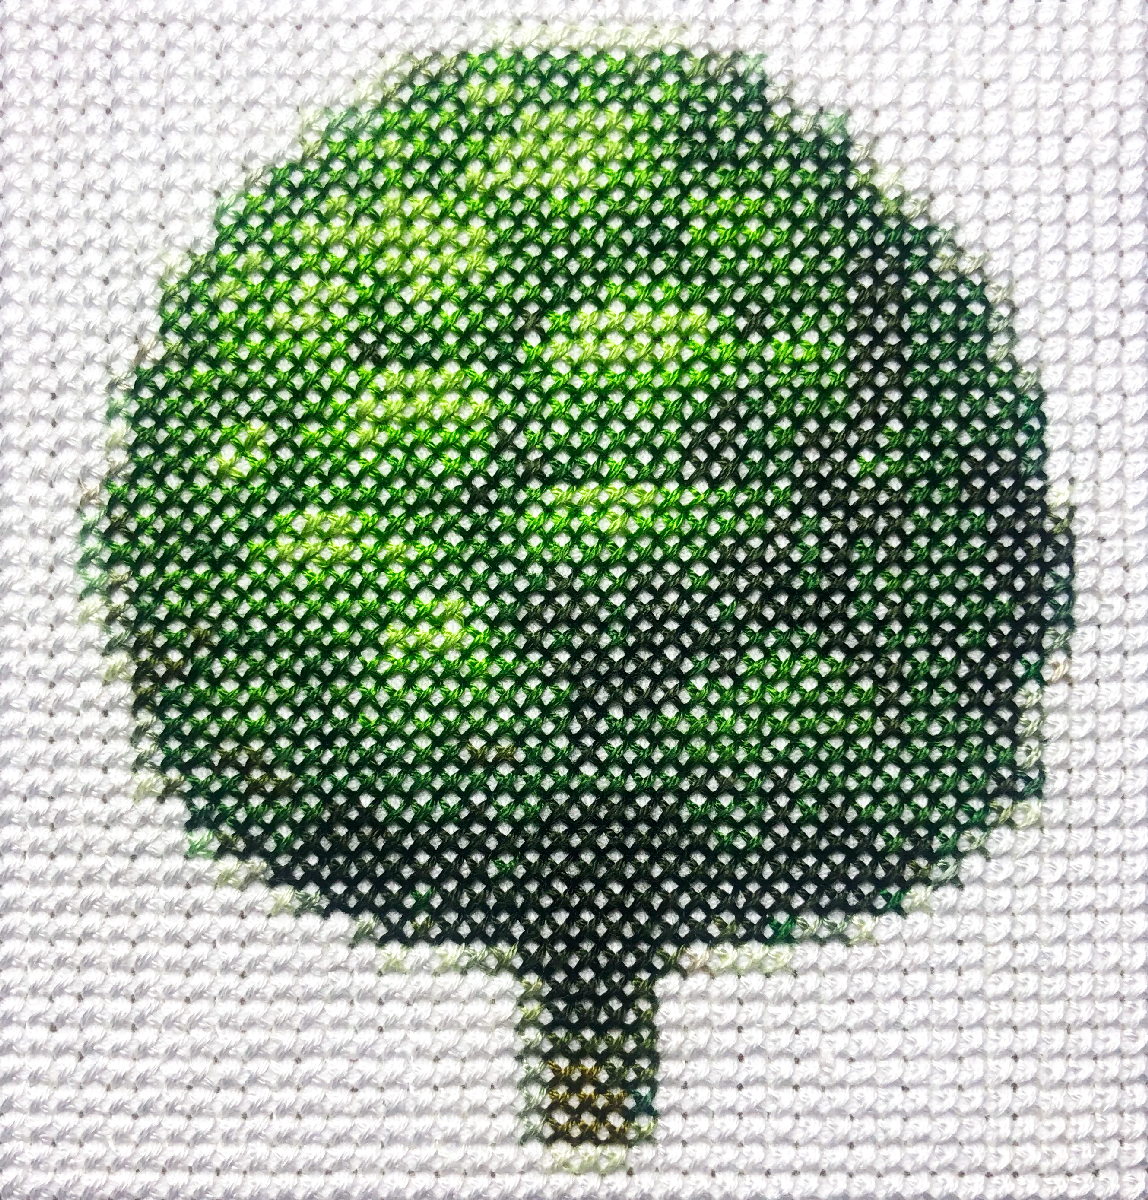 tree   Cotton thread on aida cloth  4.8 x 4 inches  2019